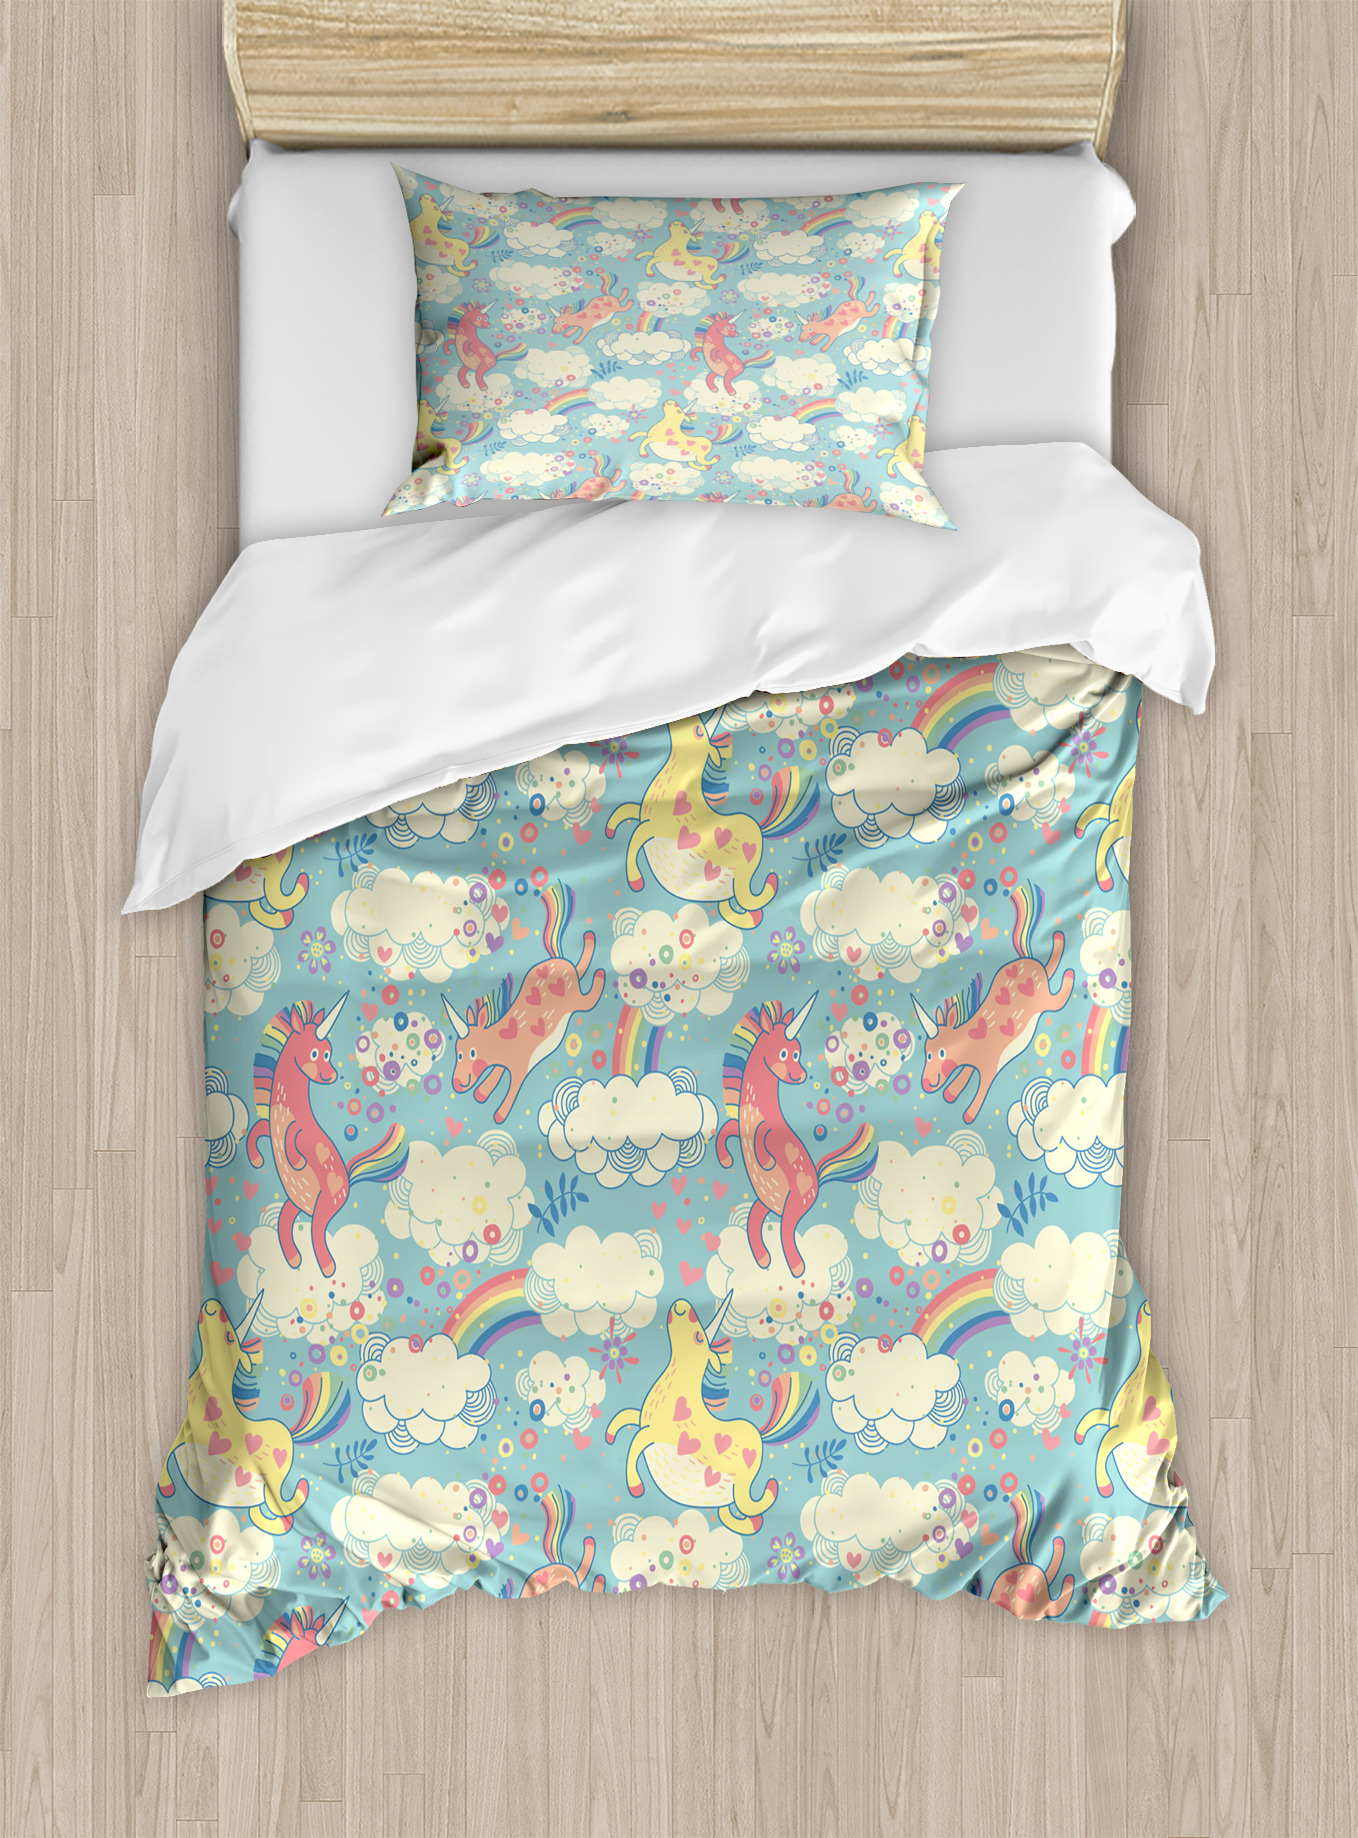 Pastel Twin Size Duvet Cover Set, Rainbow Unicorns Flying in Sky with Clouds Children... by Kozmos